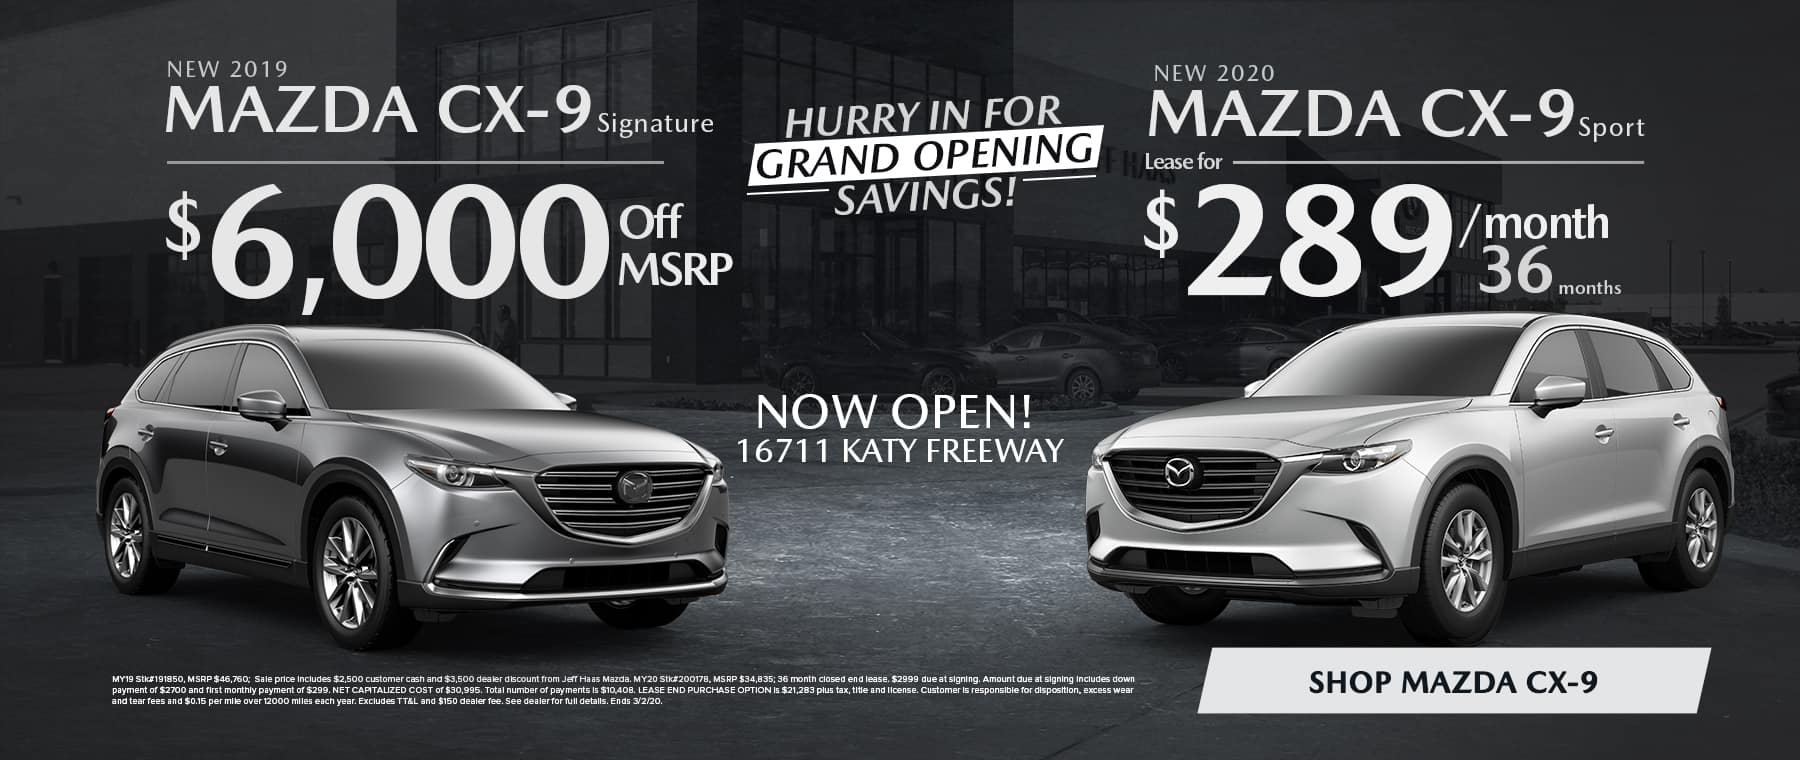 New 2019 MAZDA CX-9 Signature  $6,000 off MSRP New 2020 MAZDA CX-9 Sport Lease for $289/mo for 36 mo